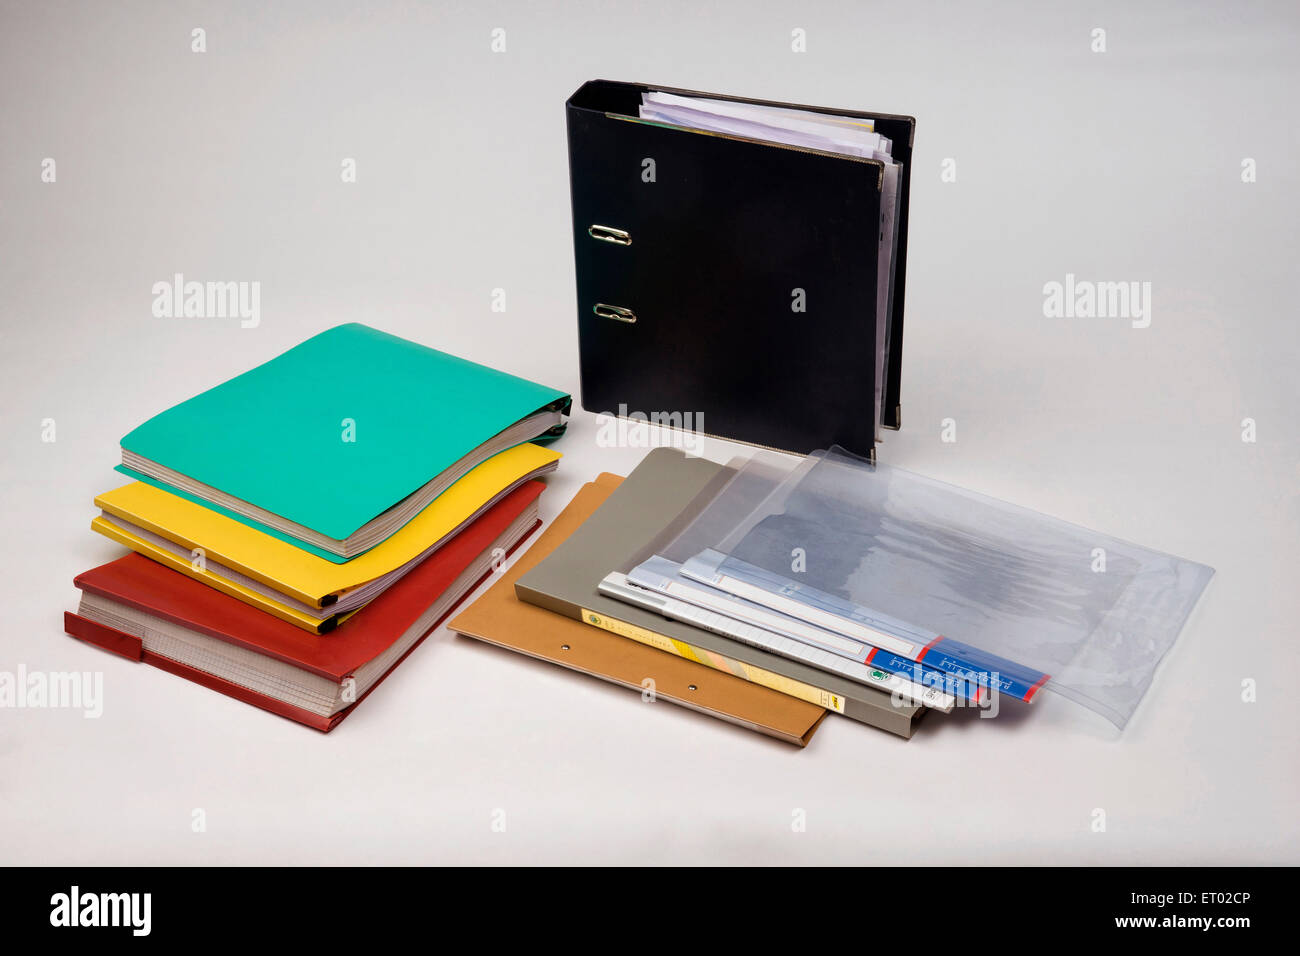 PVC Files and Folders India Asia - Stock Image